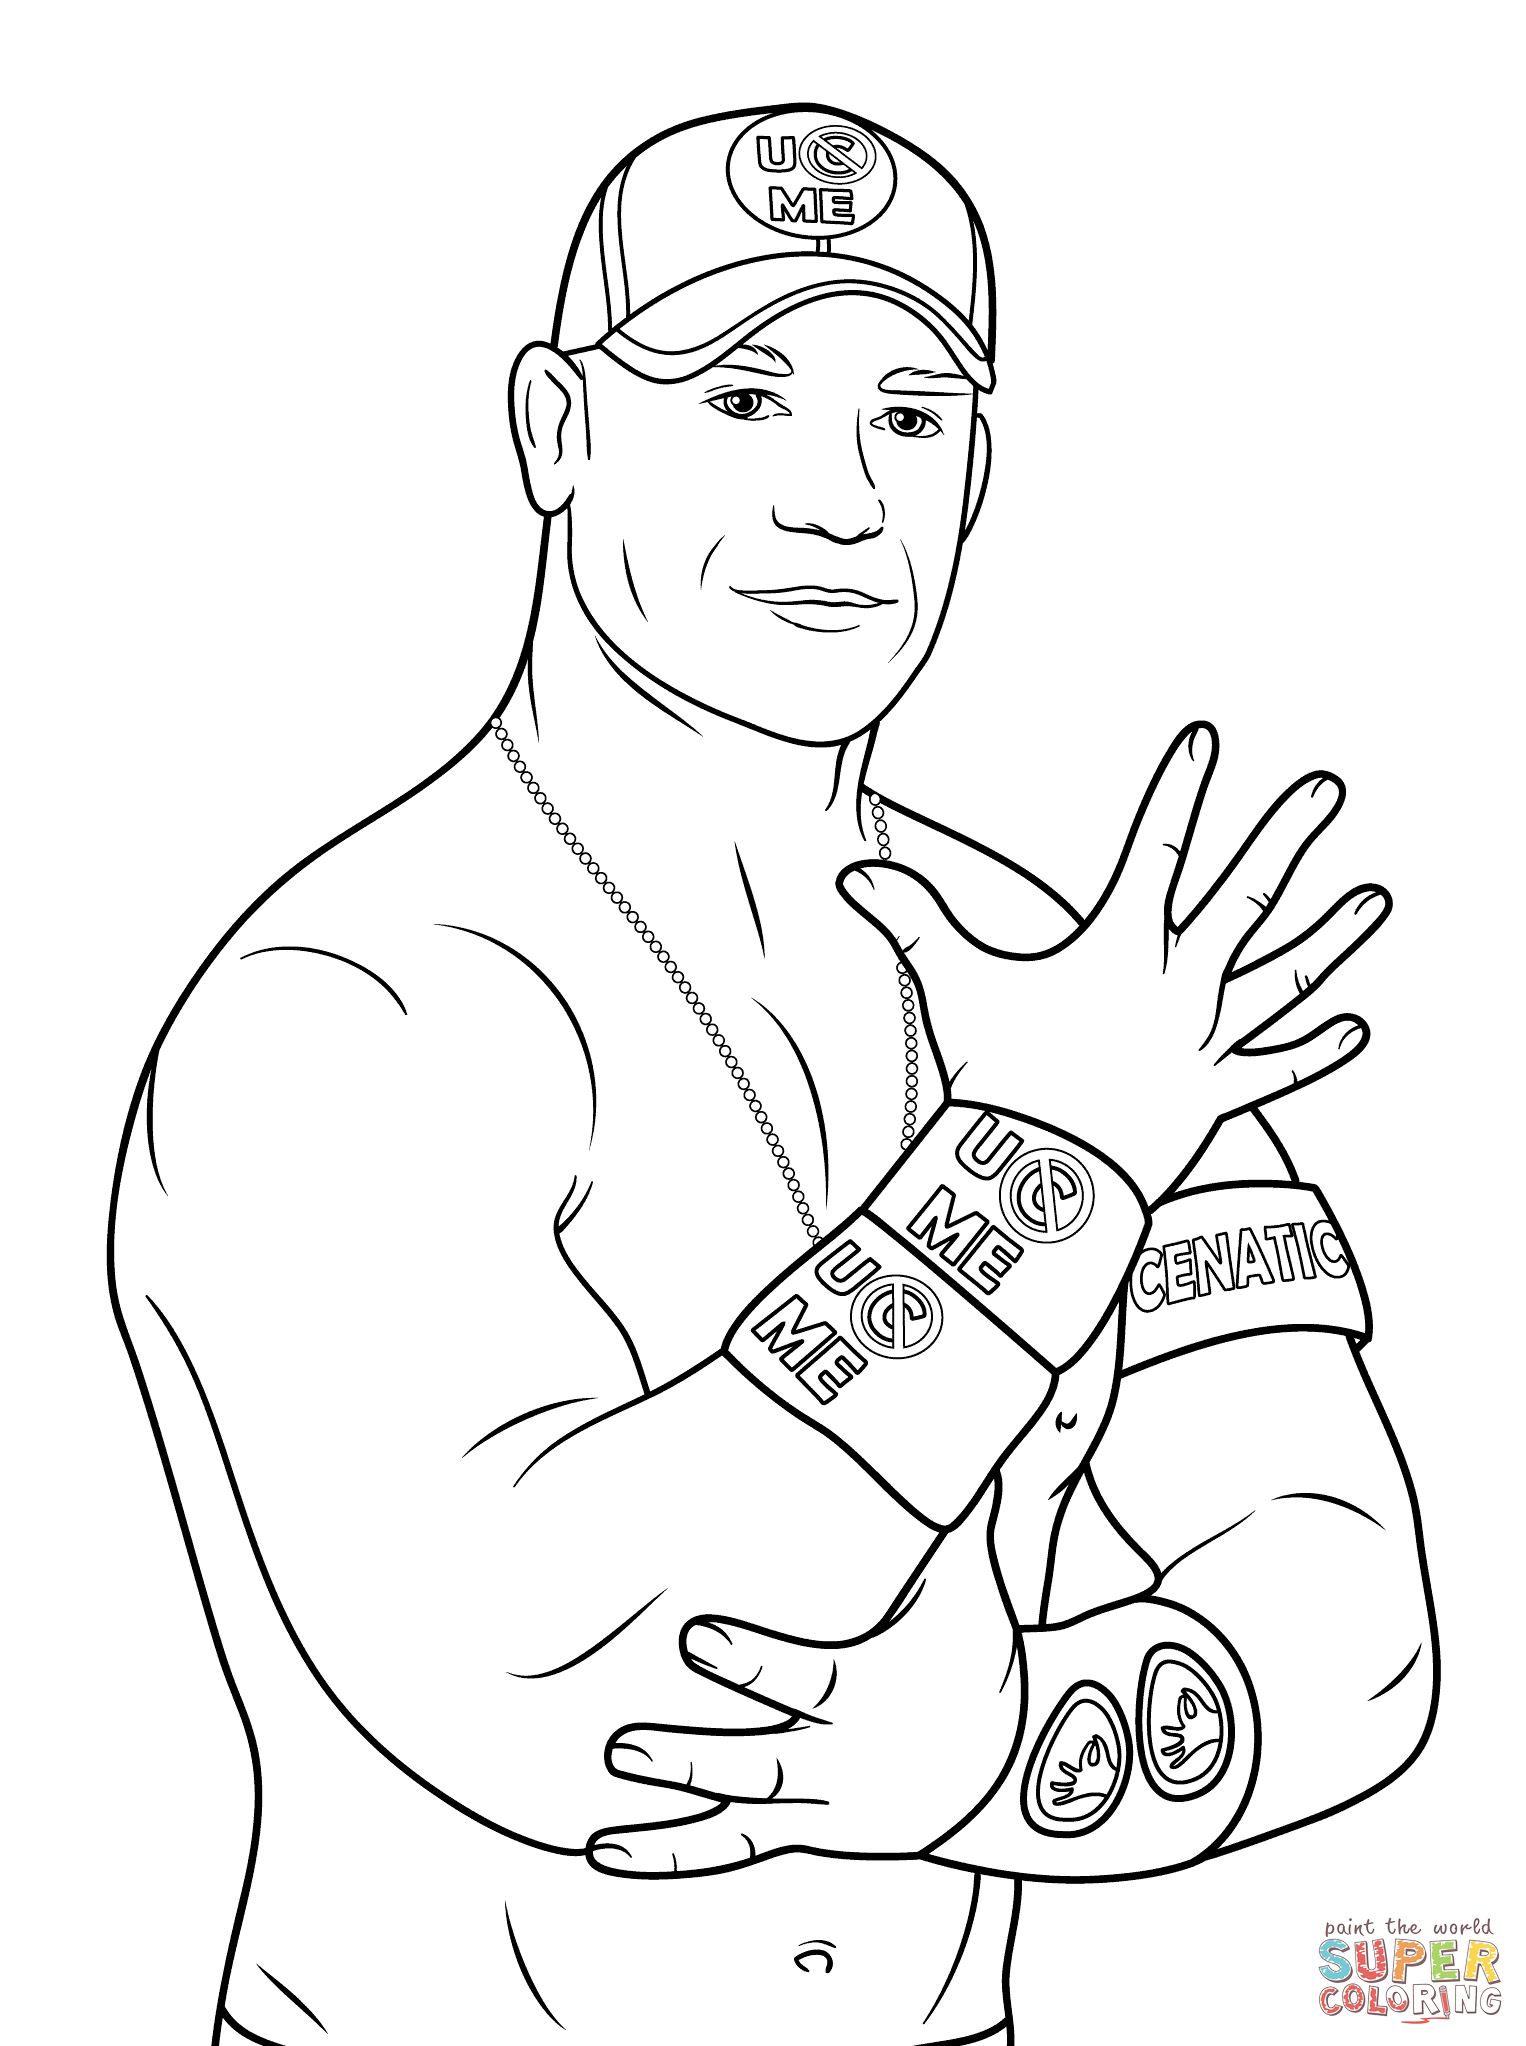 kids wrestling coloring pages - photo#19